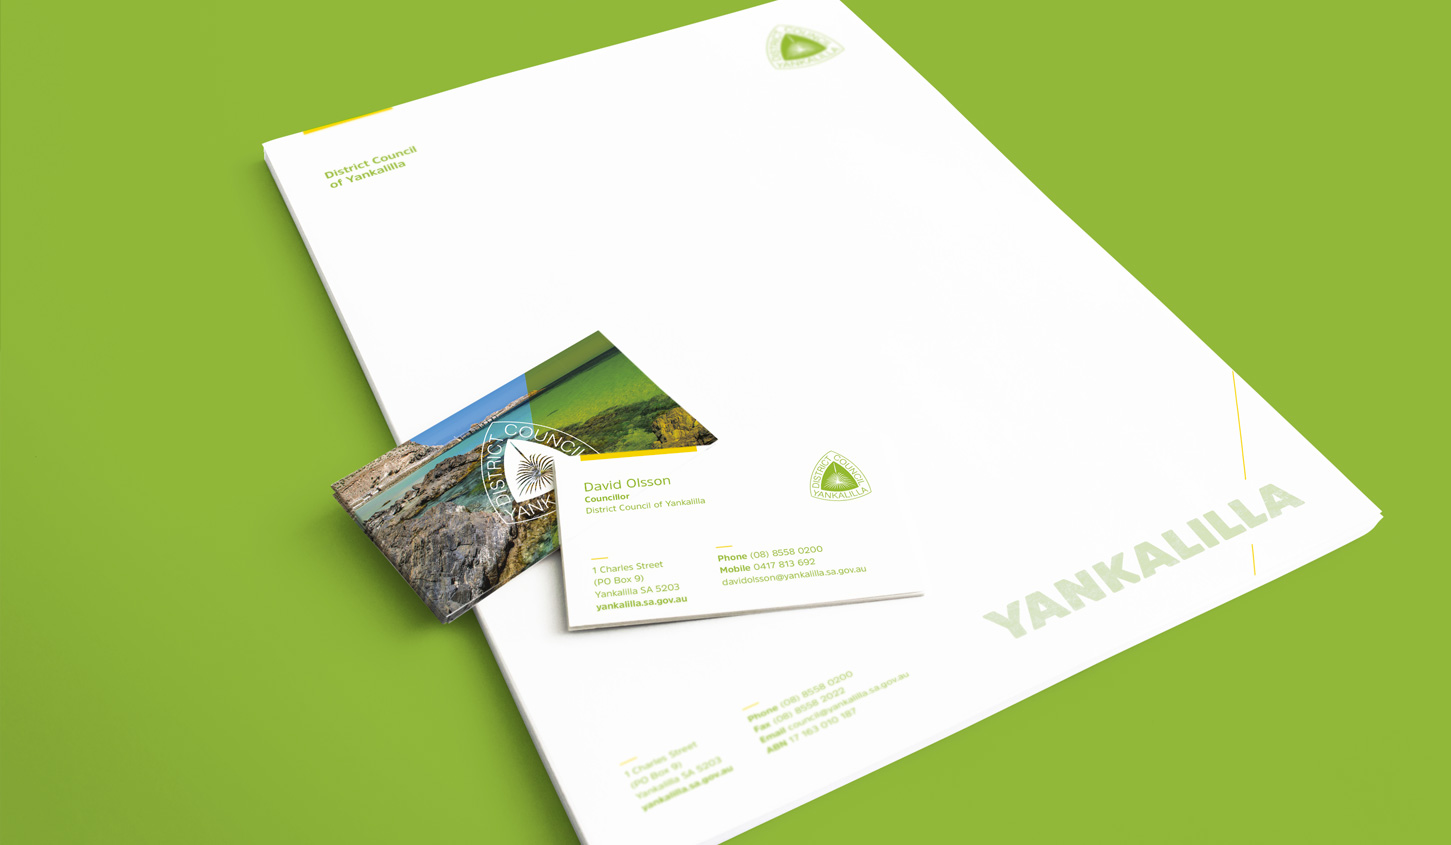 Yankalilla Letterhead Business Cards